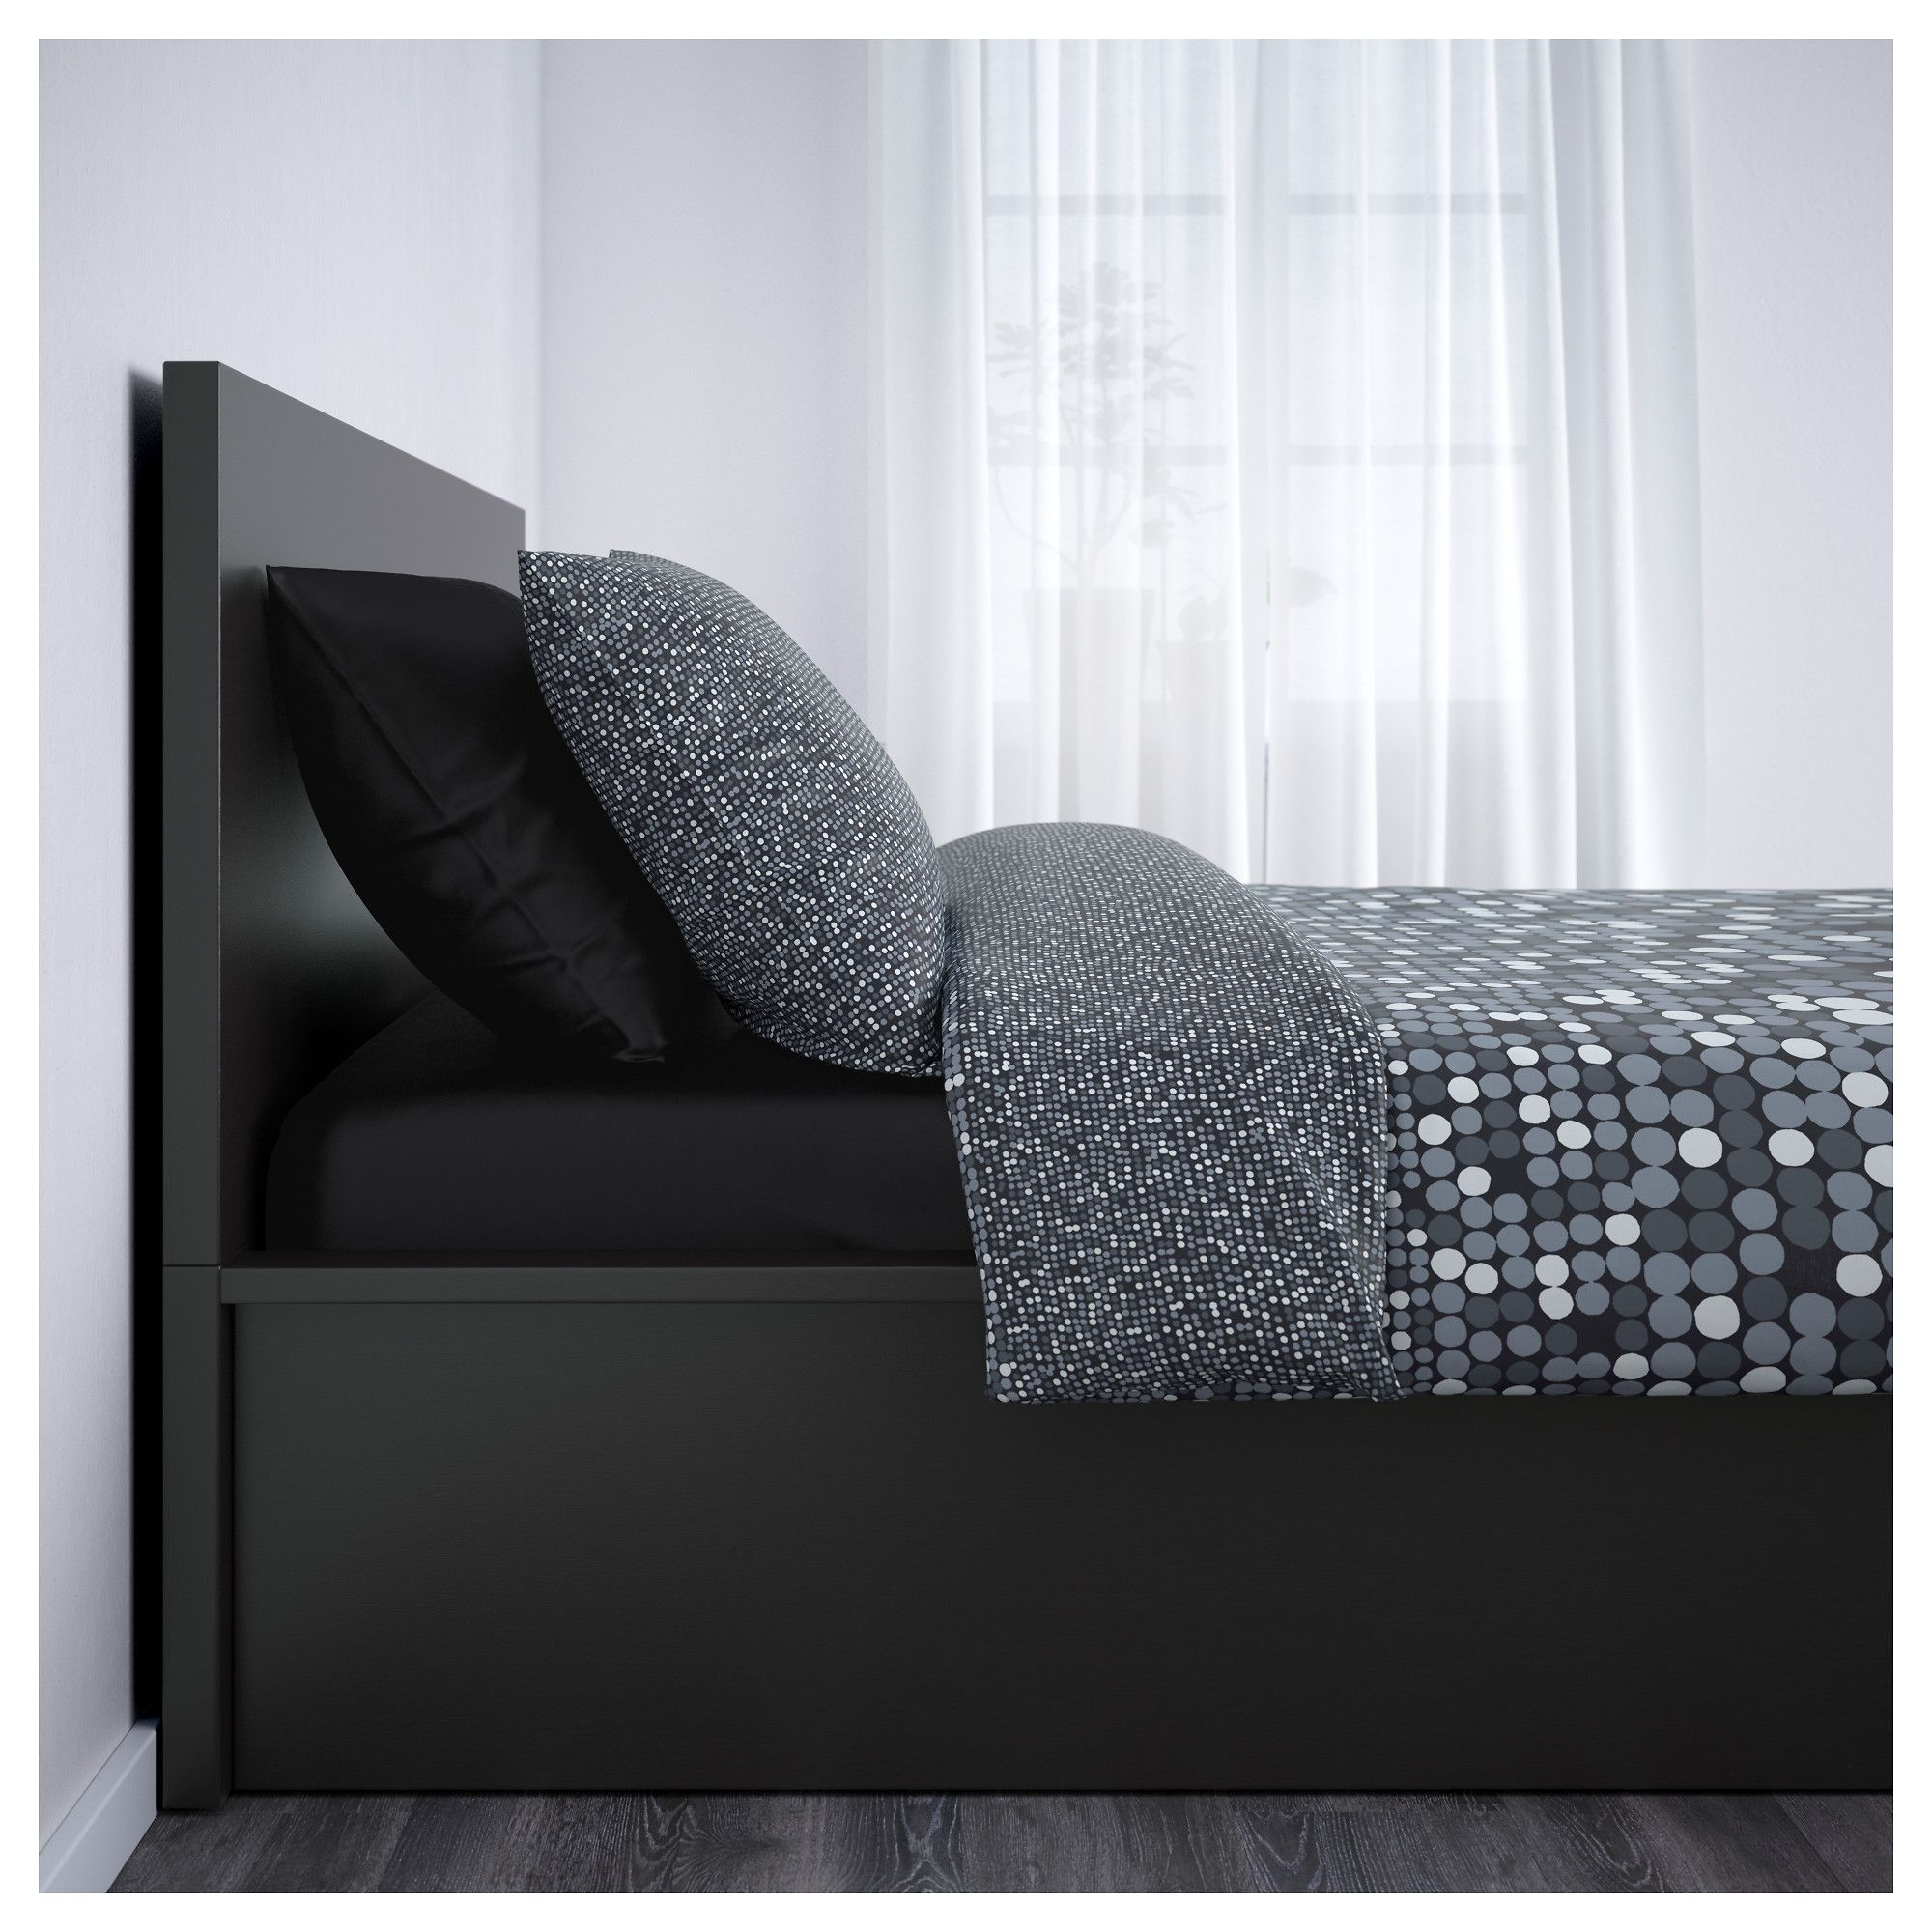 Ikea Malm Ottoman Bed Real Wood Veneer Will Make This Age Gracefully